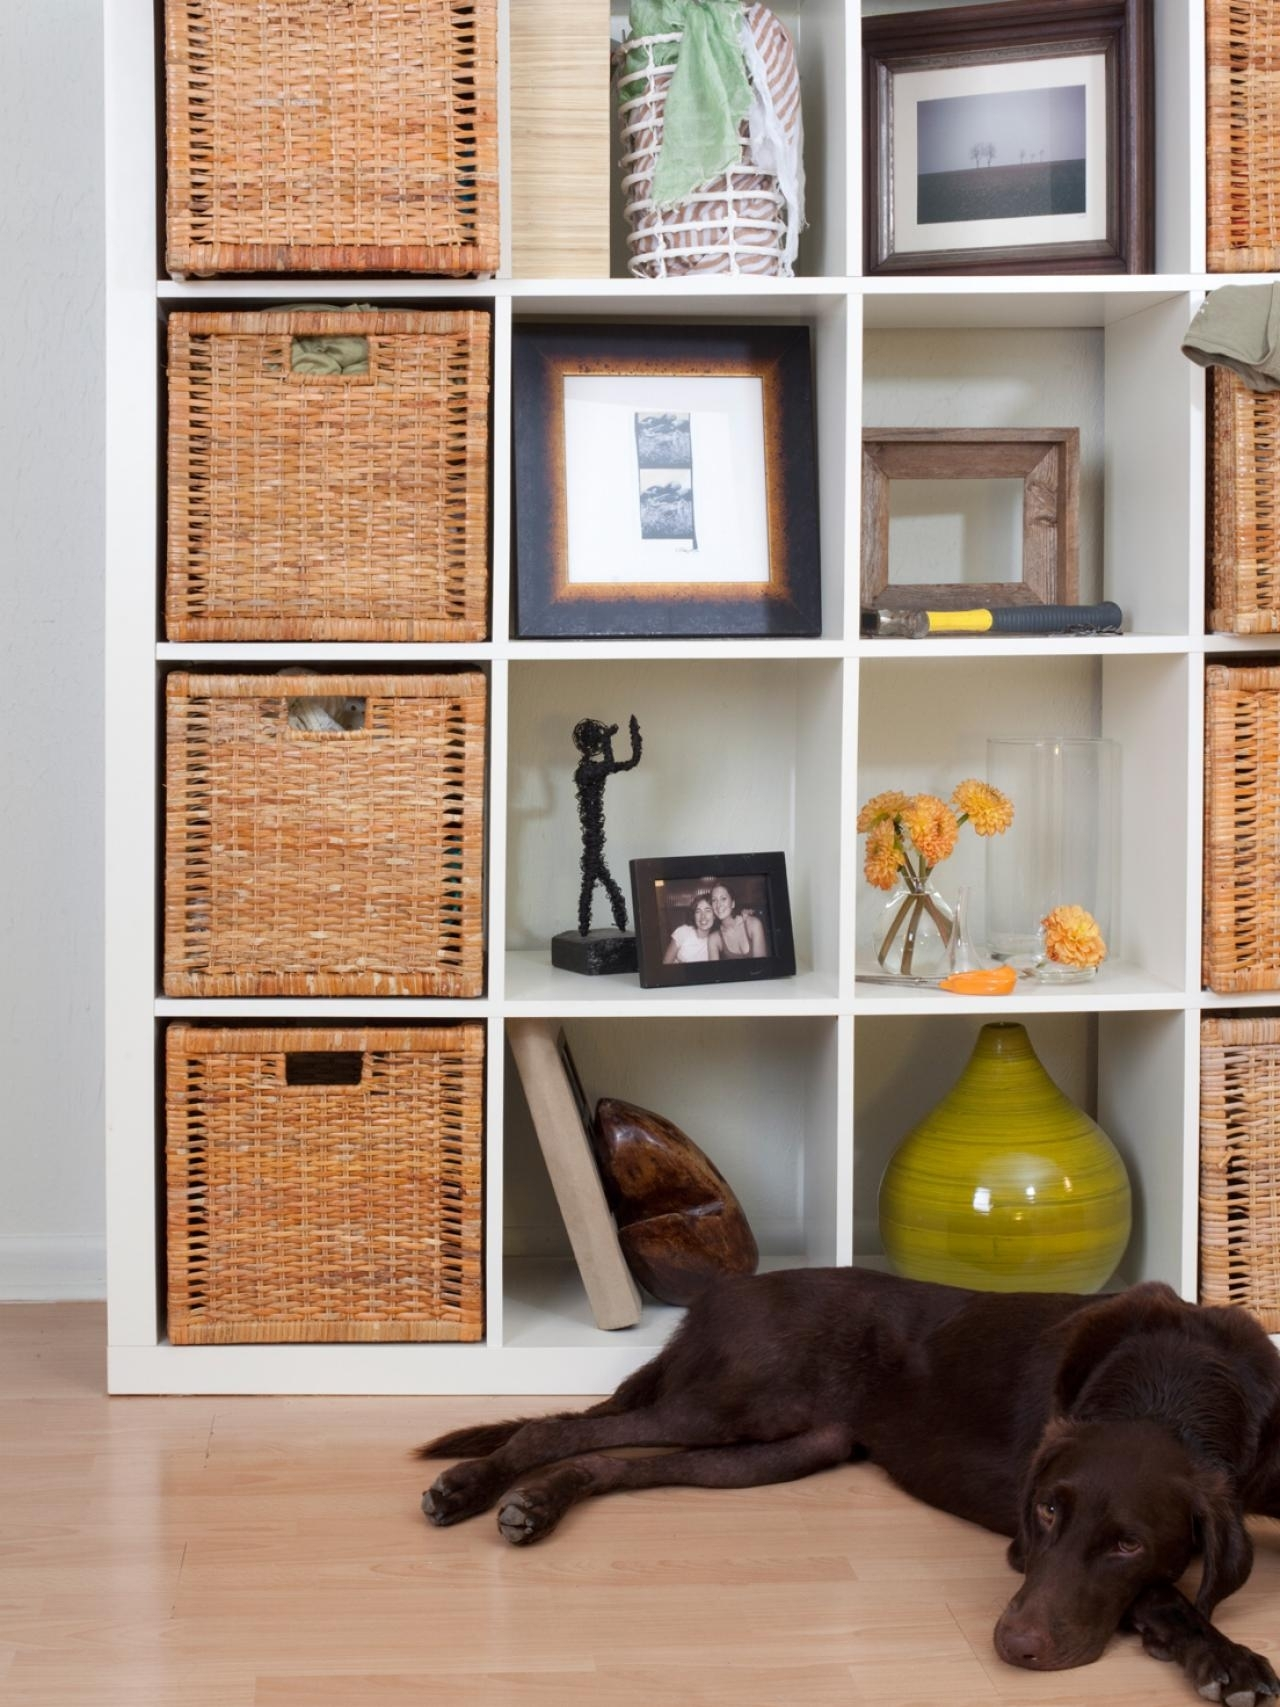 10 Spectacular Storage Ideas For Small Apartments %name 2021